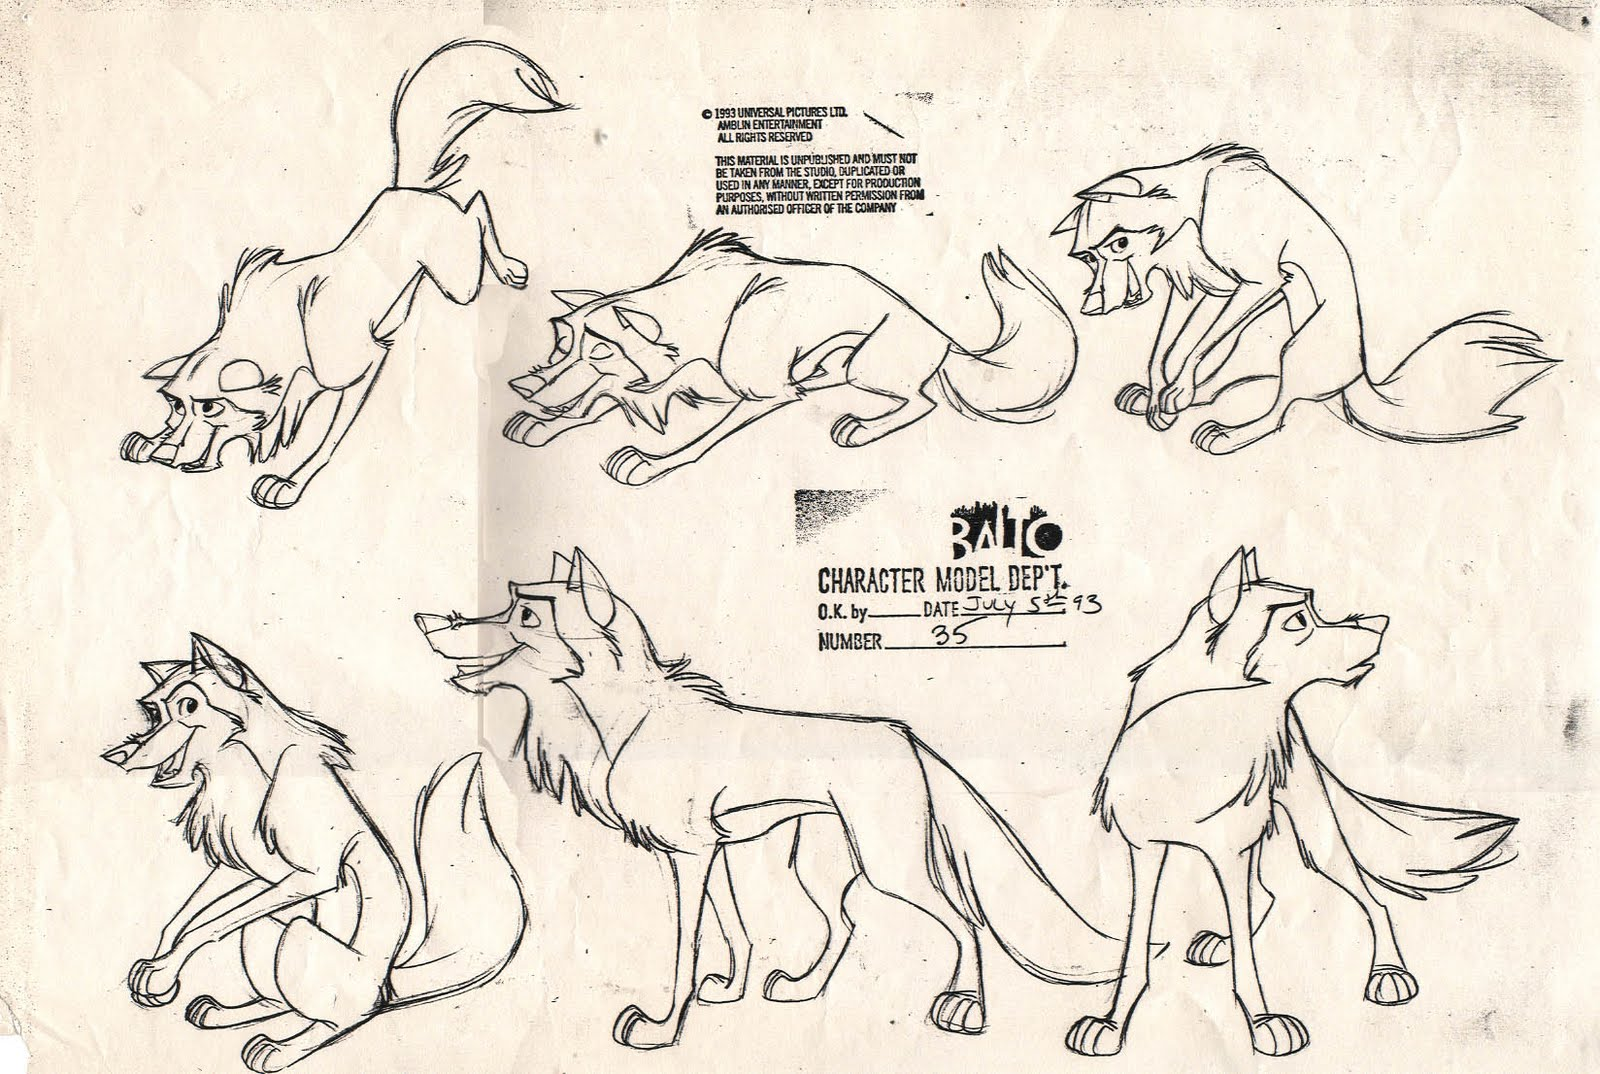 Character Design Library : U g moodboard on pinterest images character